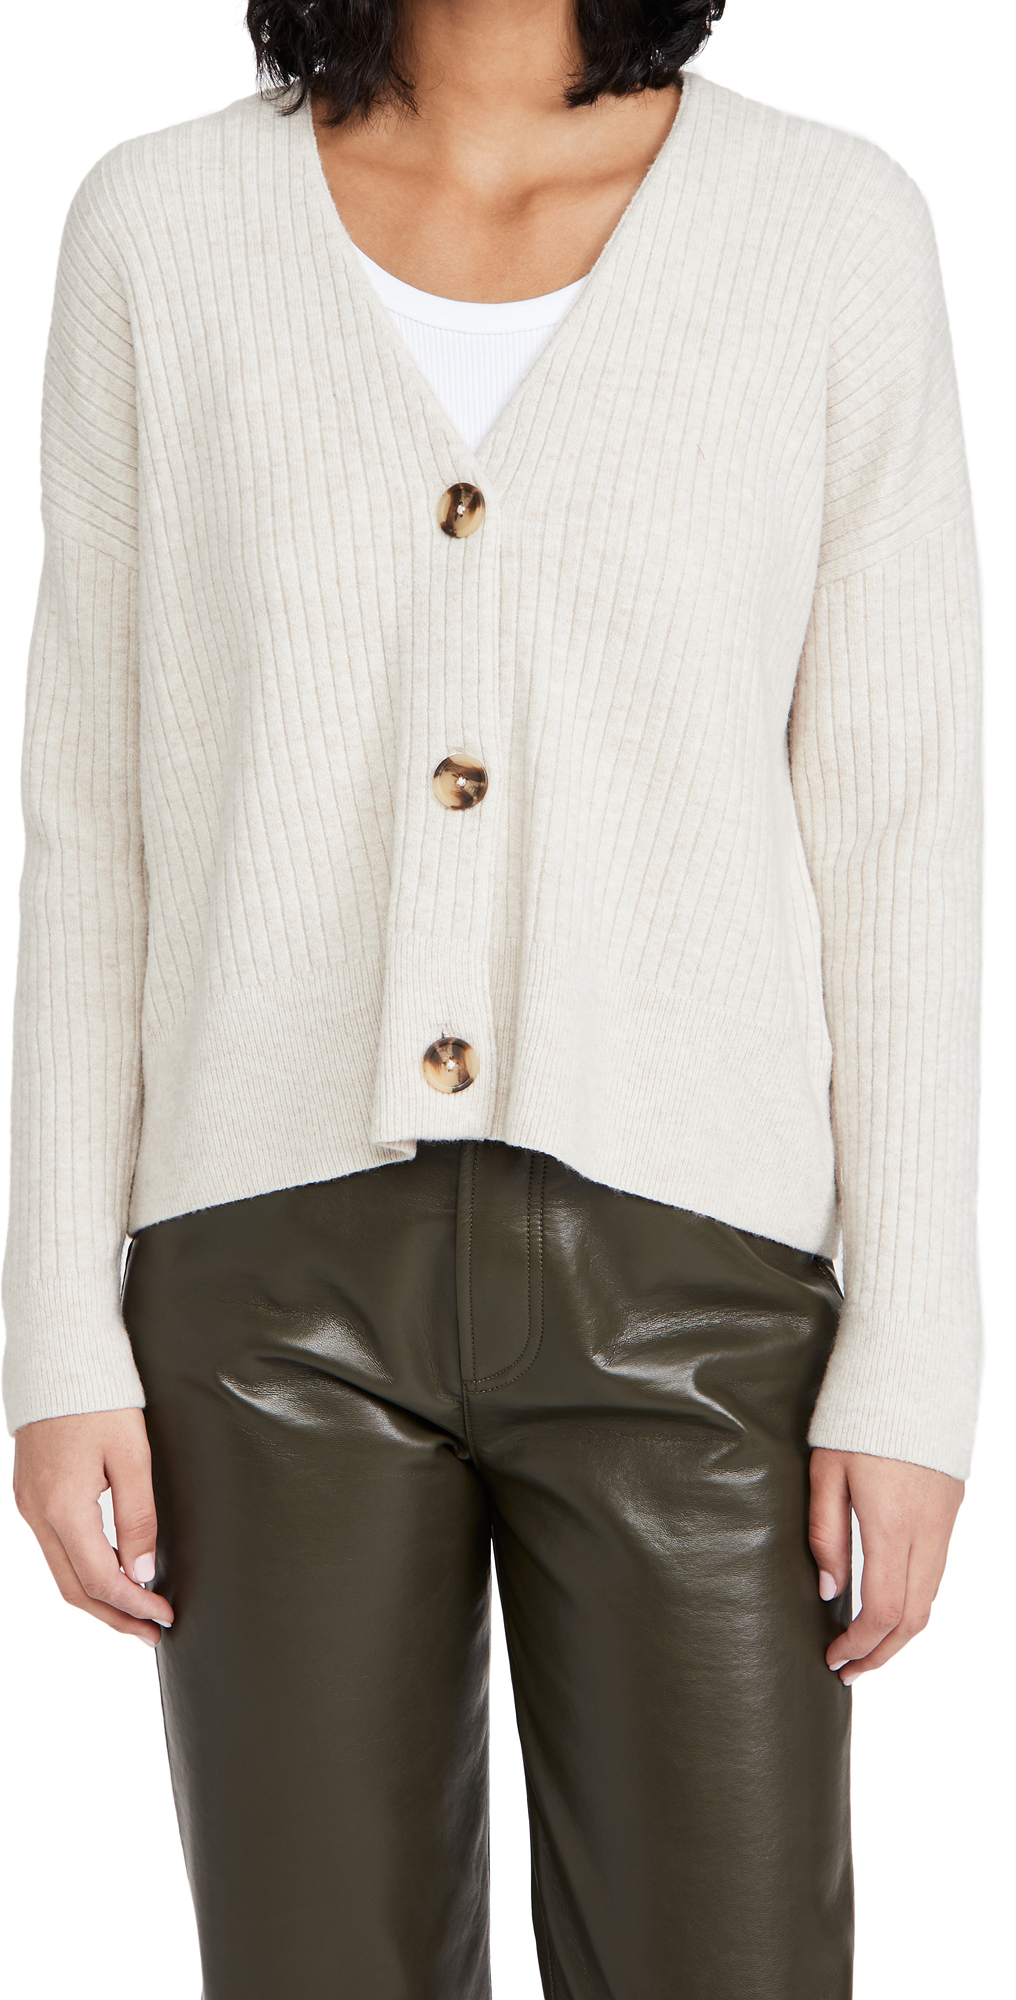 Madewell Secret Santa Cropped V Neck Cardigan